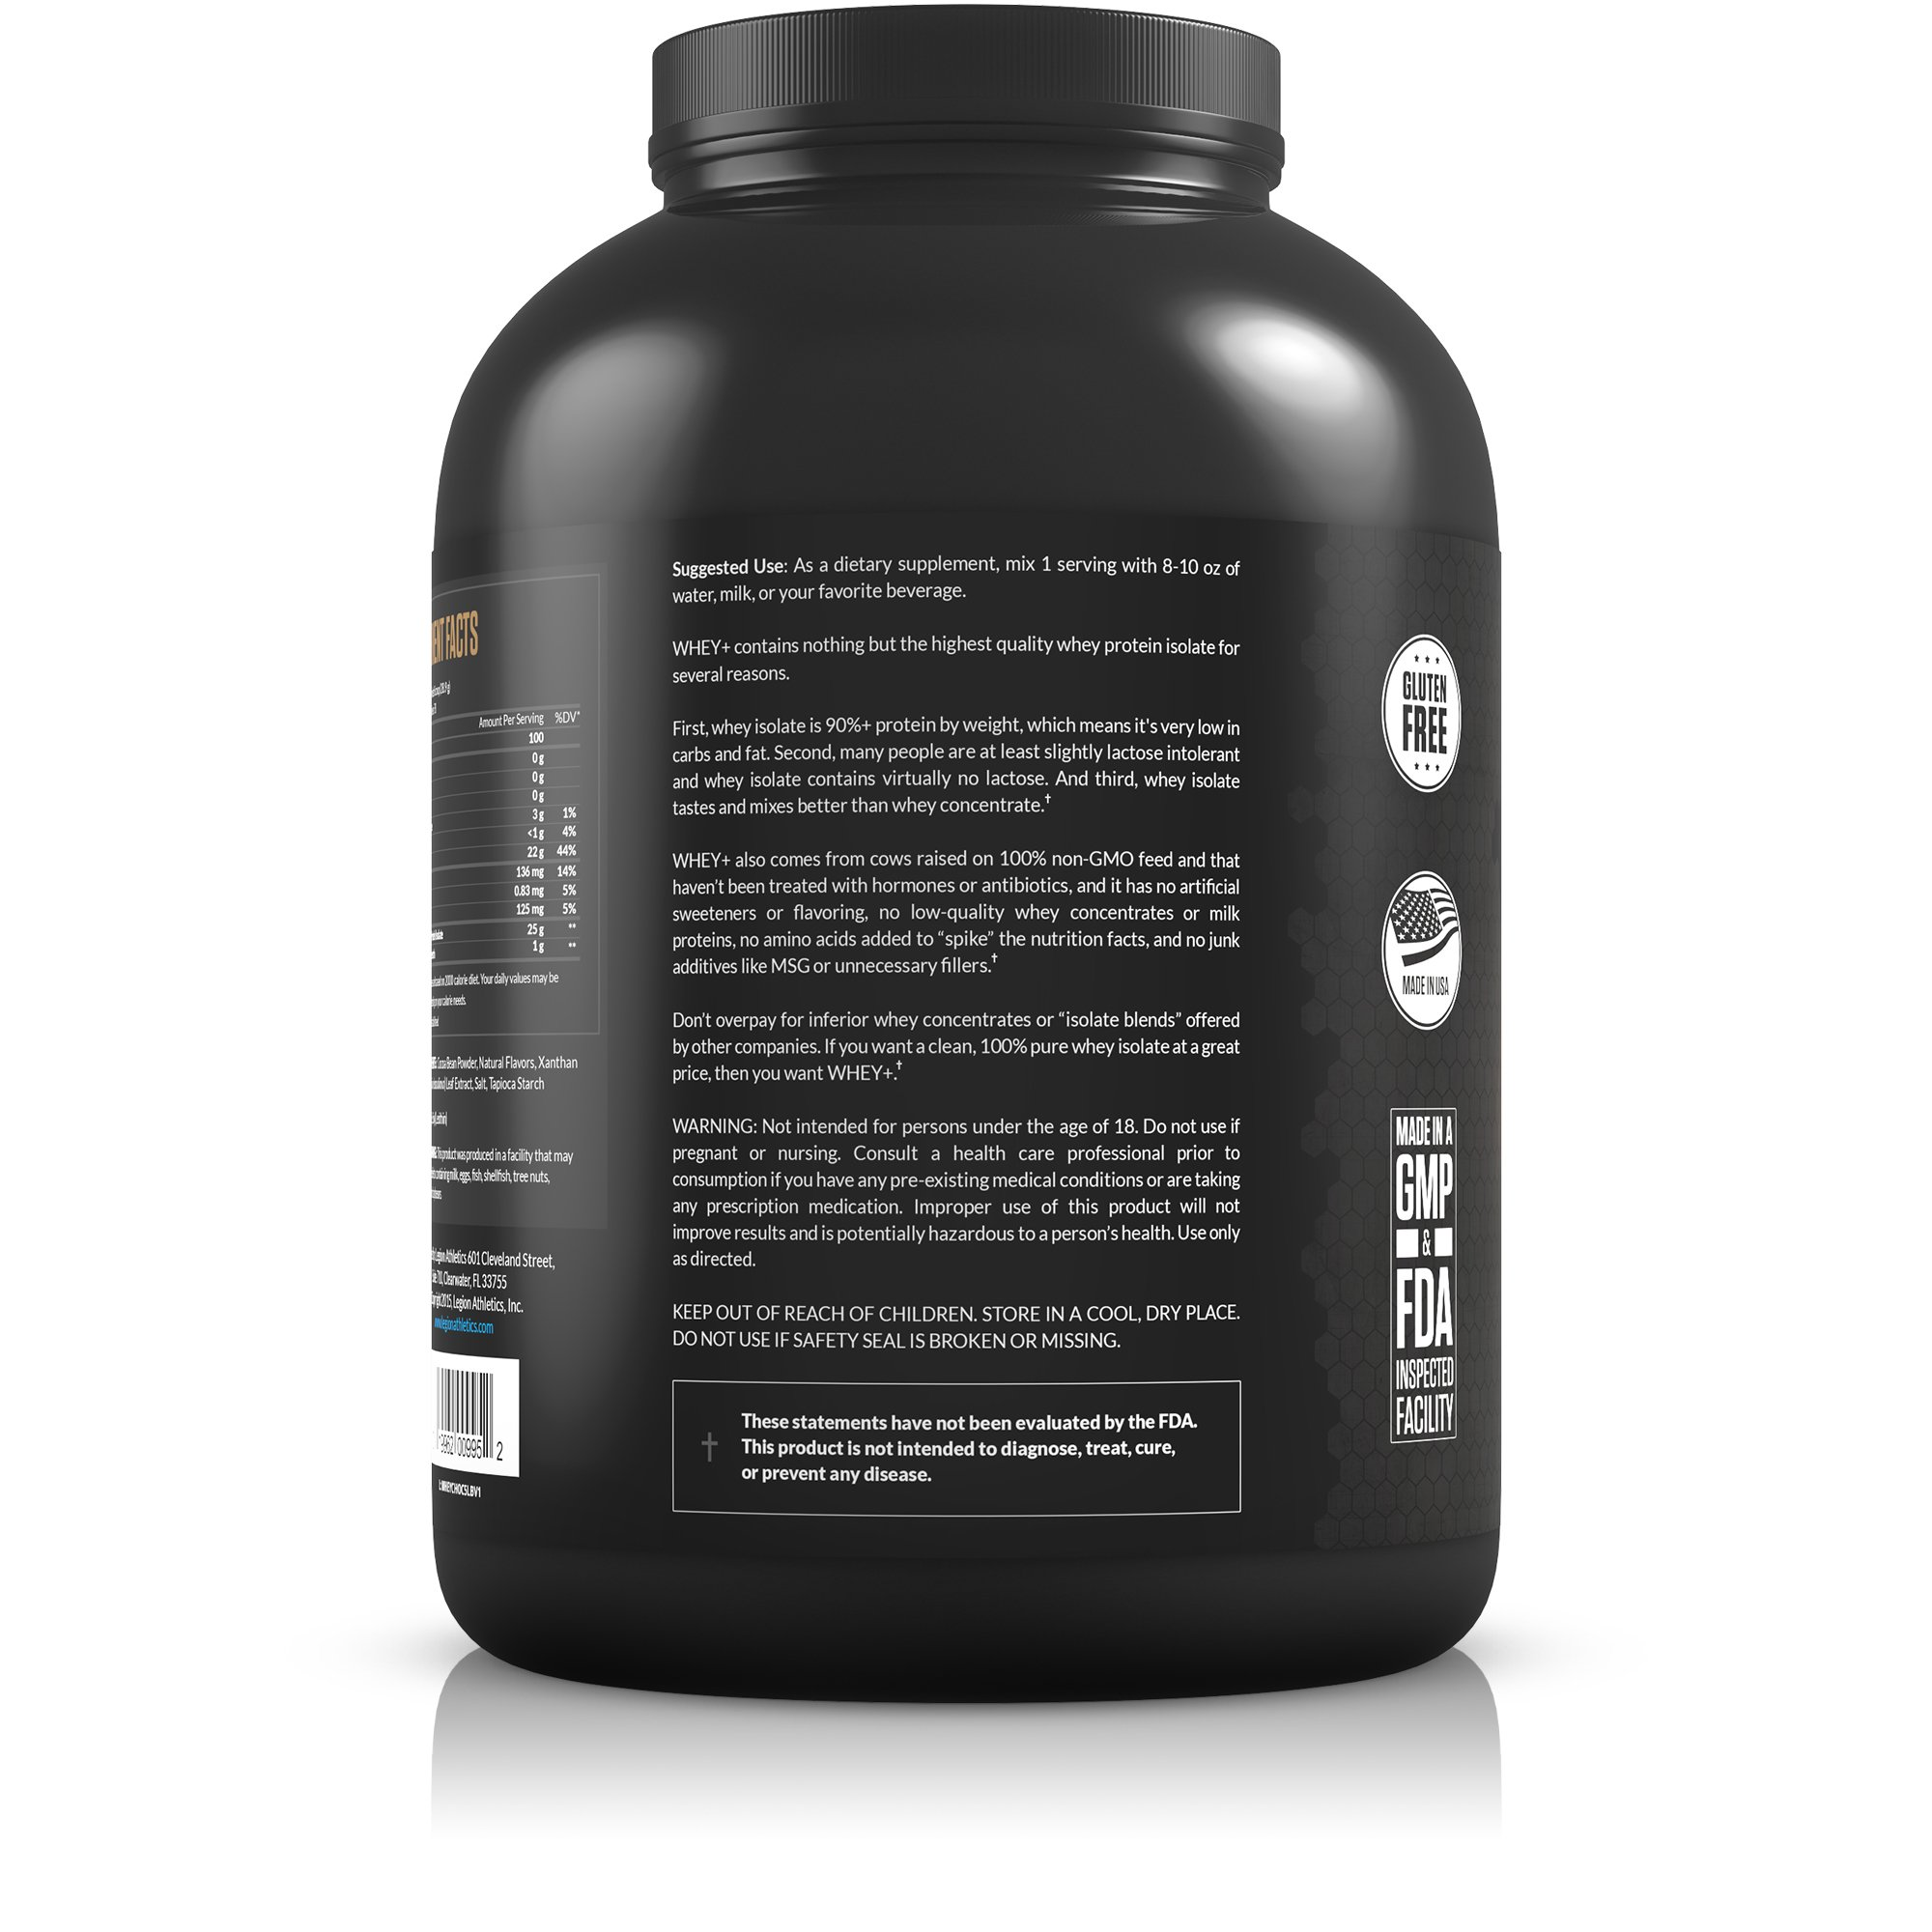 Legion Whey+ Chocolate Protein Powder 5lb. Best Tasting All Natural Whey Isolate Protein Shake From Grass Fed Cows For Bodybuilding, Weight Loss & Faster Recovery - Low Carb, Lactose Free, Sugar Free. by Legion Athletics (Image #2)